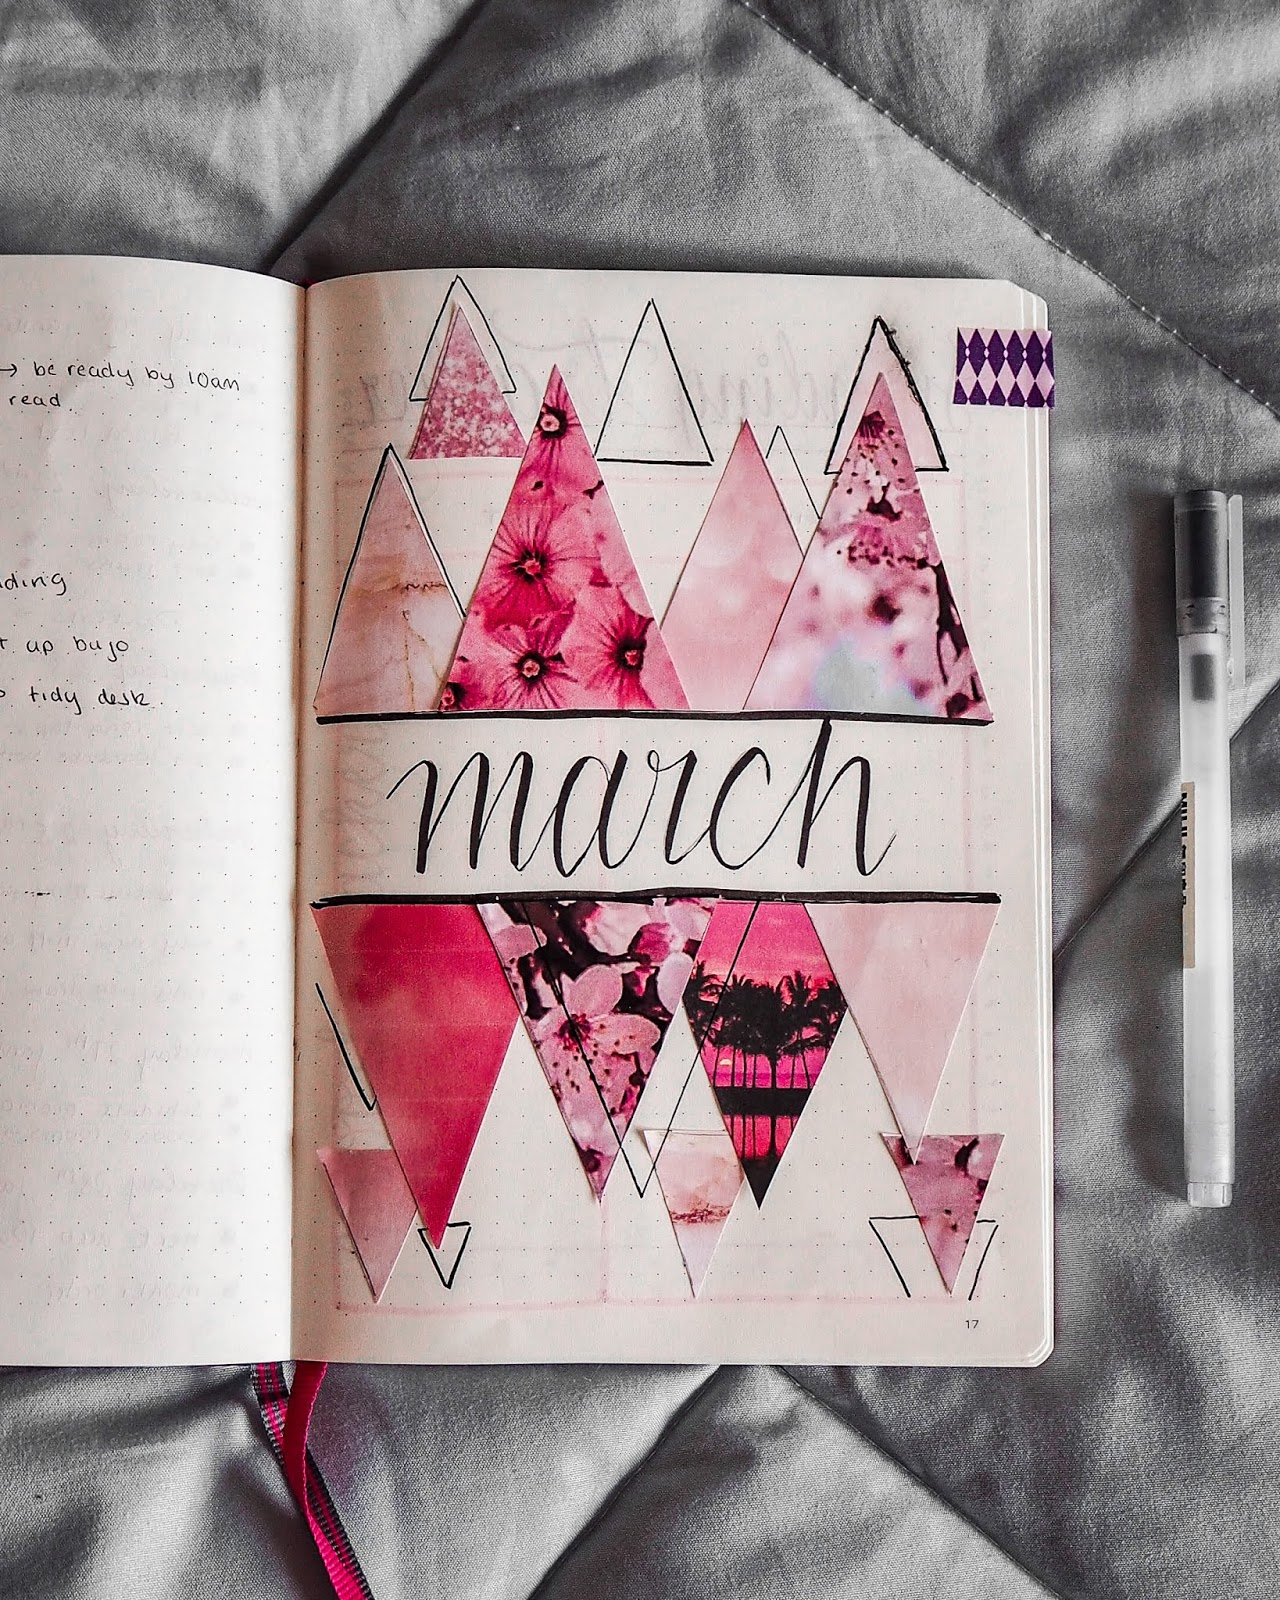 march is written in cursive font in the centre of the page, with triangles of different pink prints surrounding it